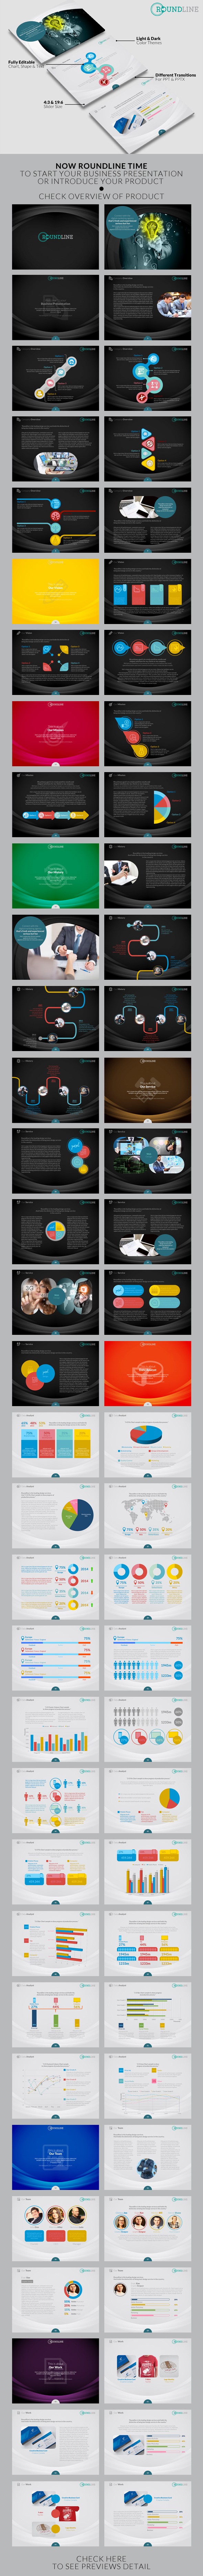 Roundline Powerpoint Template - PowerPoint Templates Presentation Templates